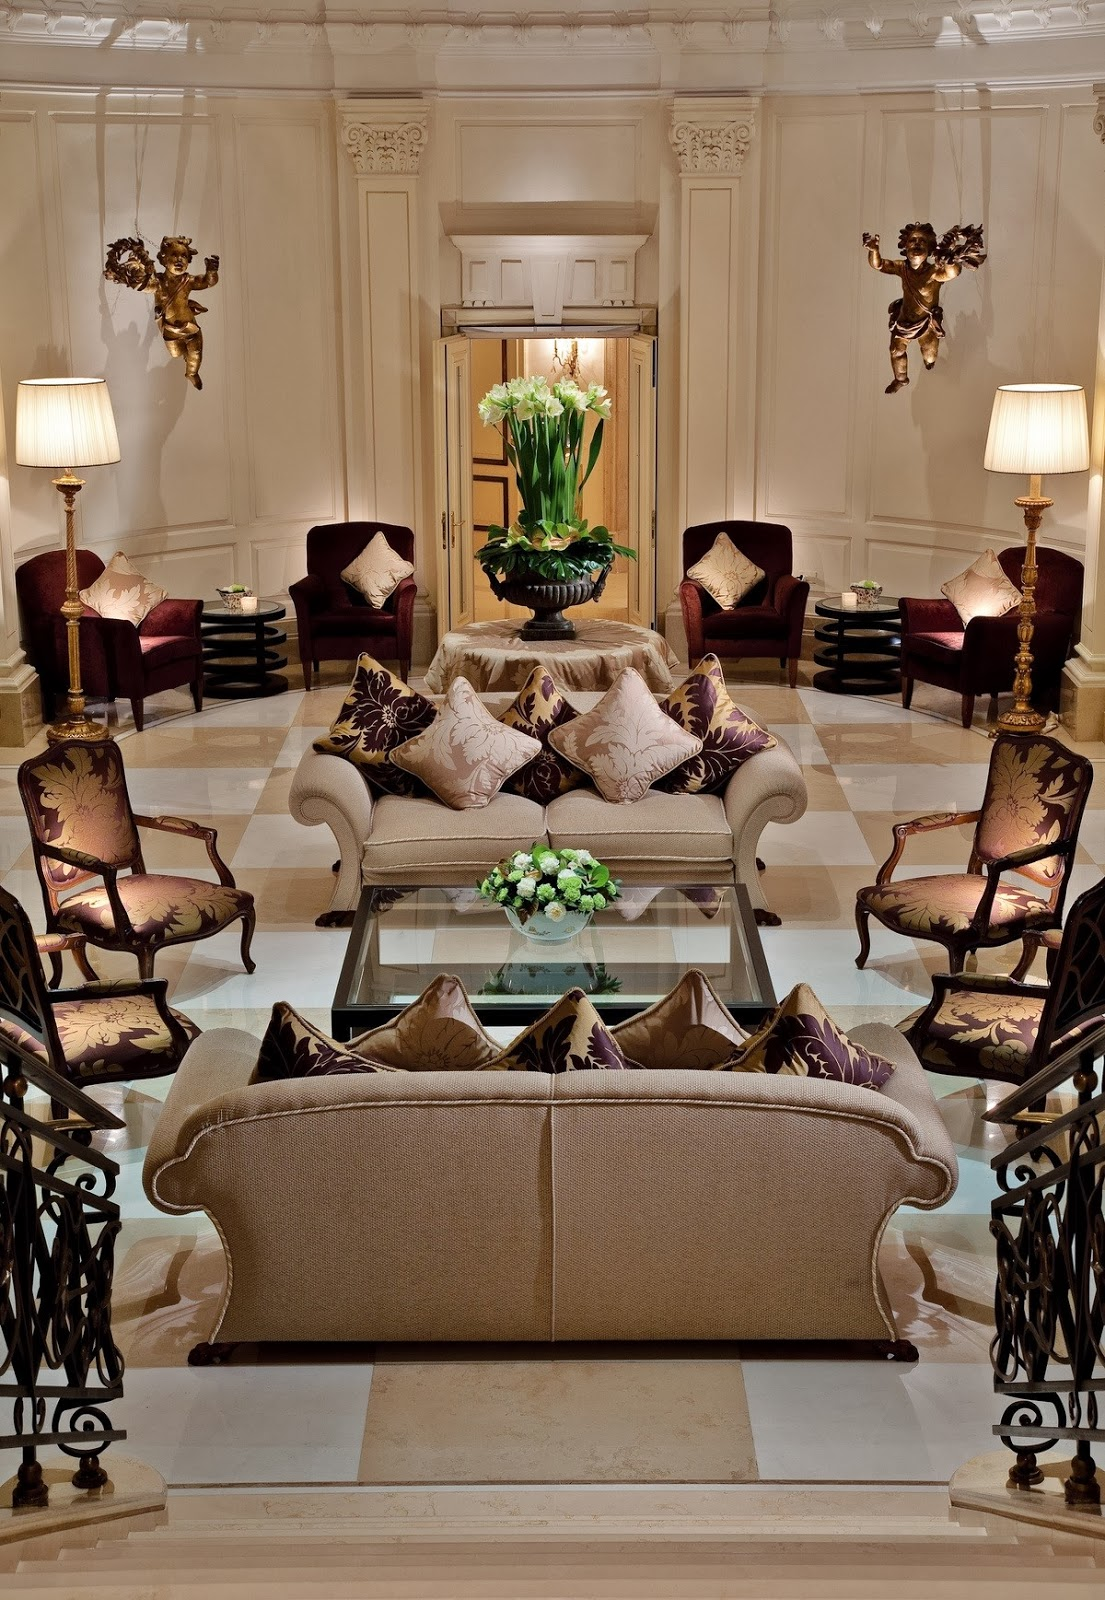 Passion For Luxury   Luxurious Hotel Eden